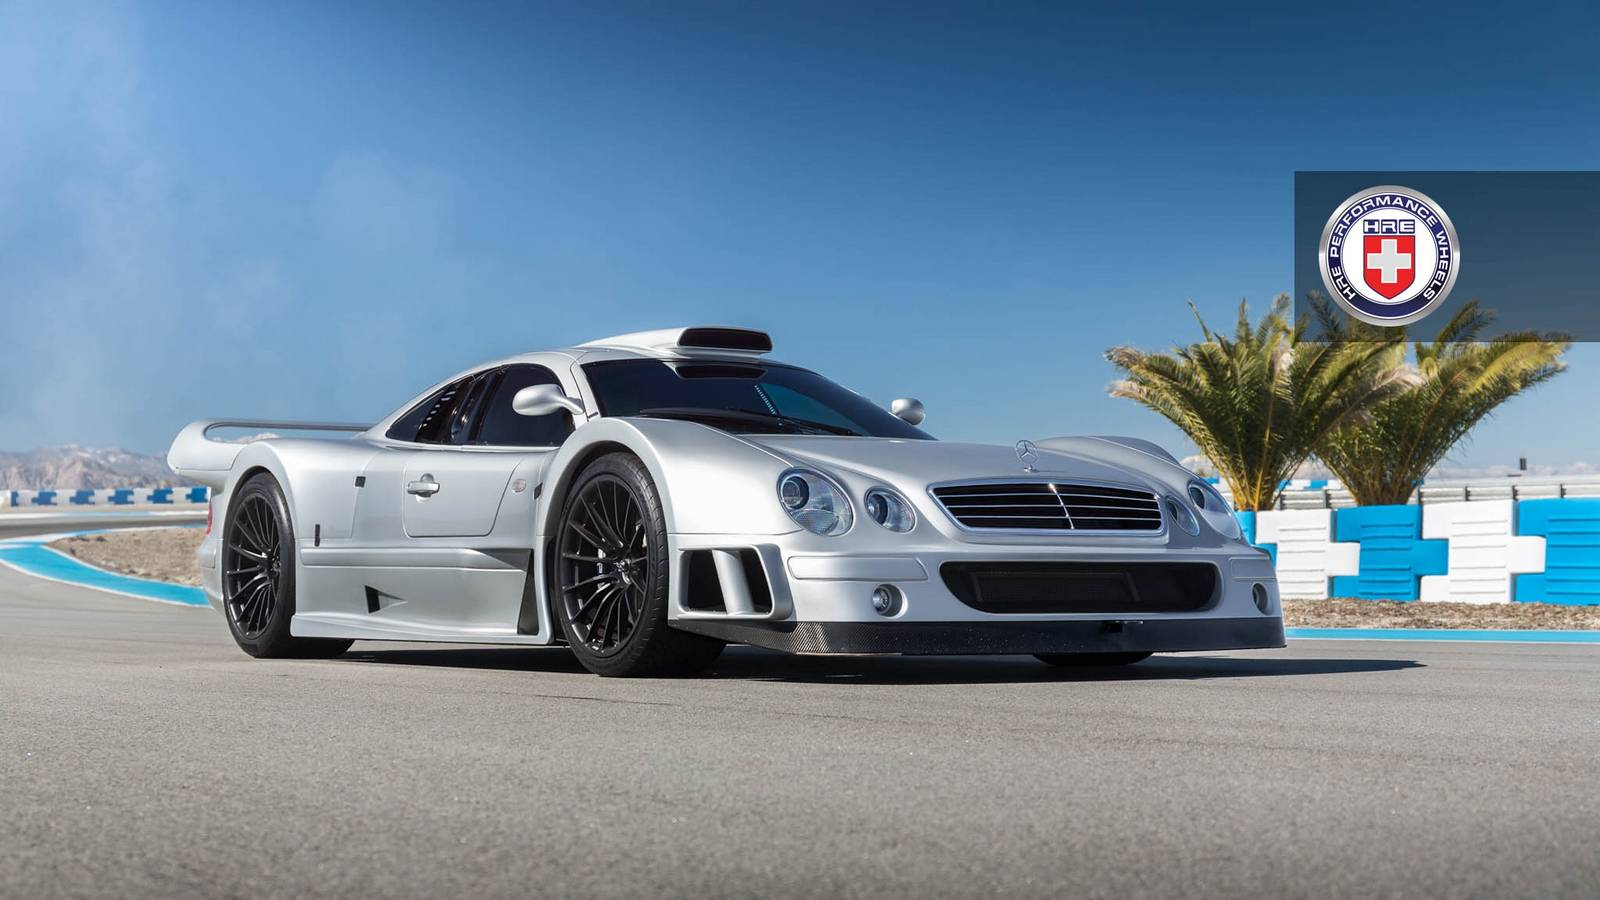 Stunning Mercedes Benz Clk Gtr With Satin Black Hre Wheels